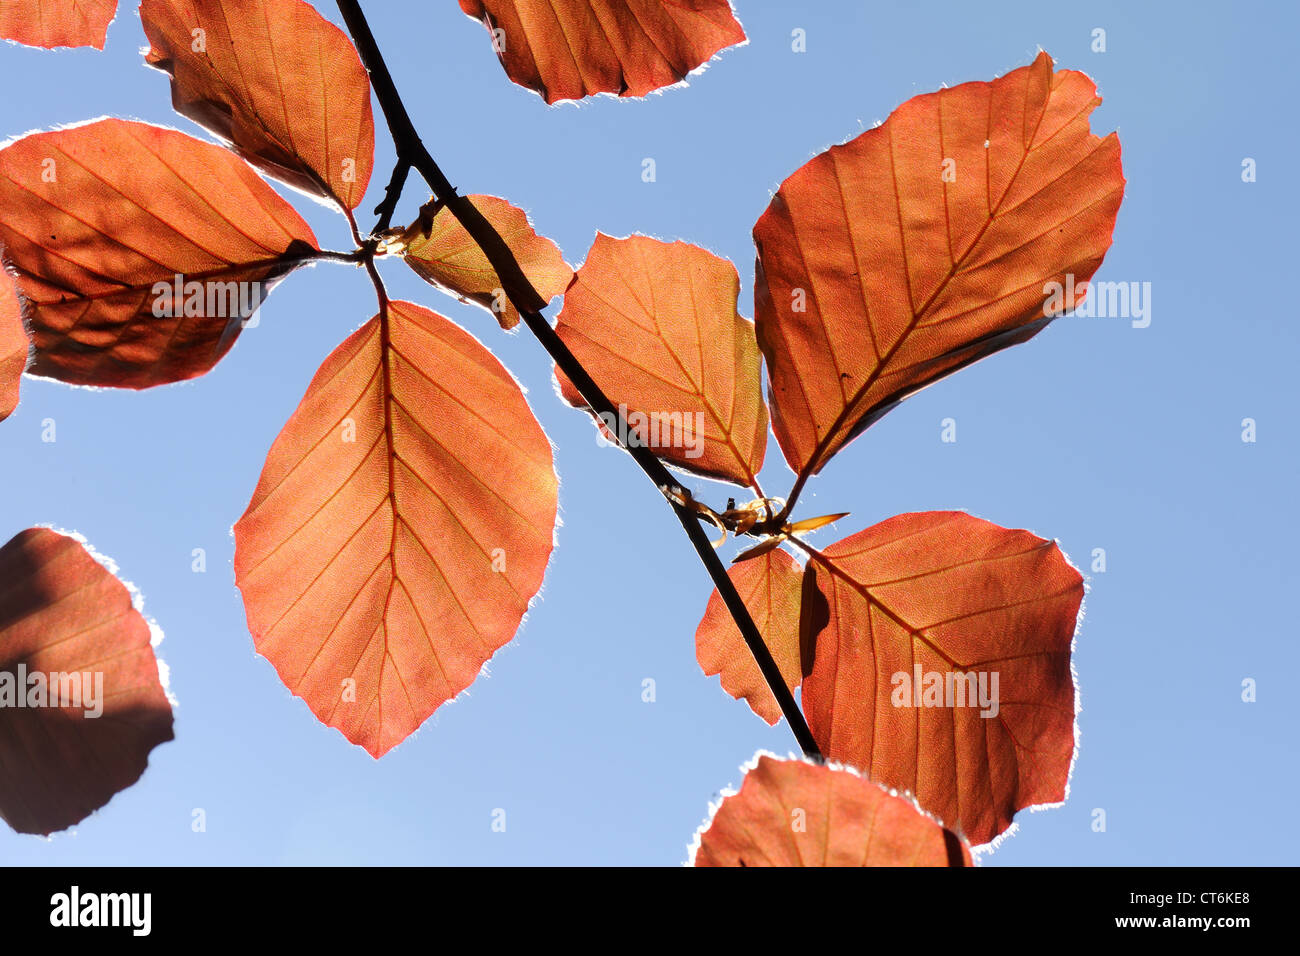 Young copper beech foliage backlit against a blue spring sky - Stock Image